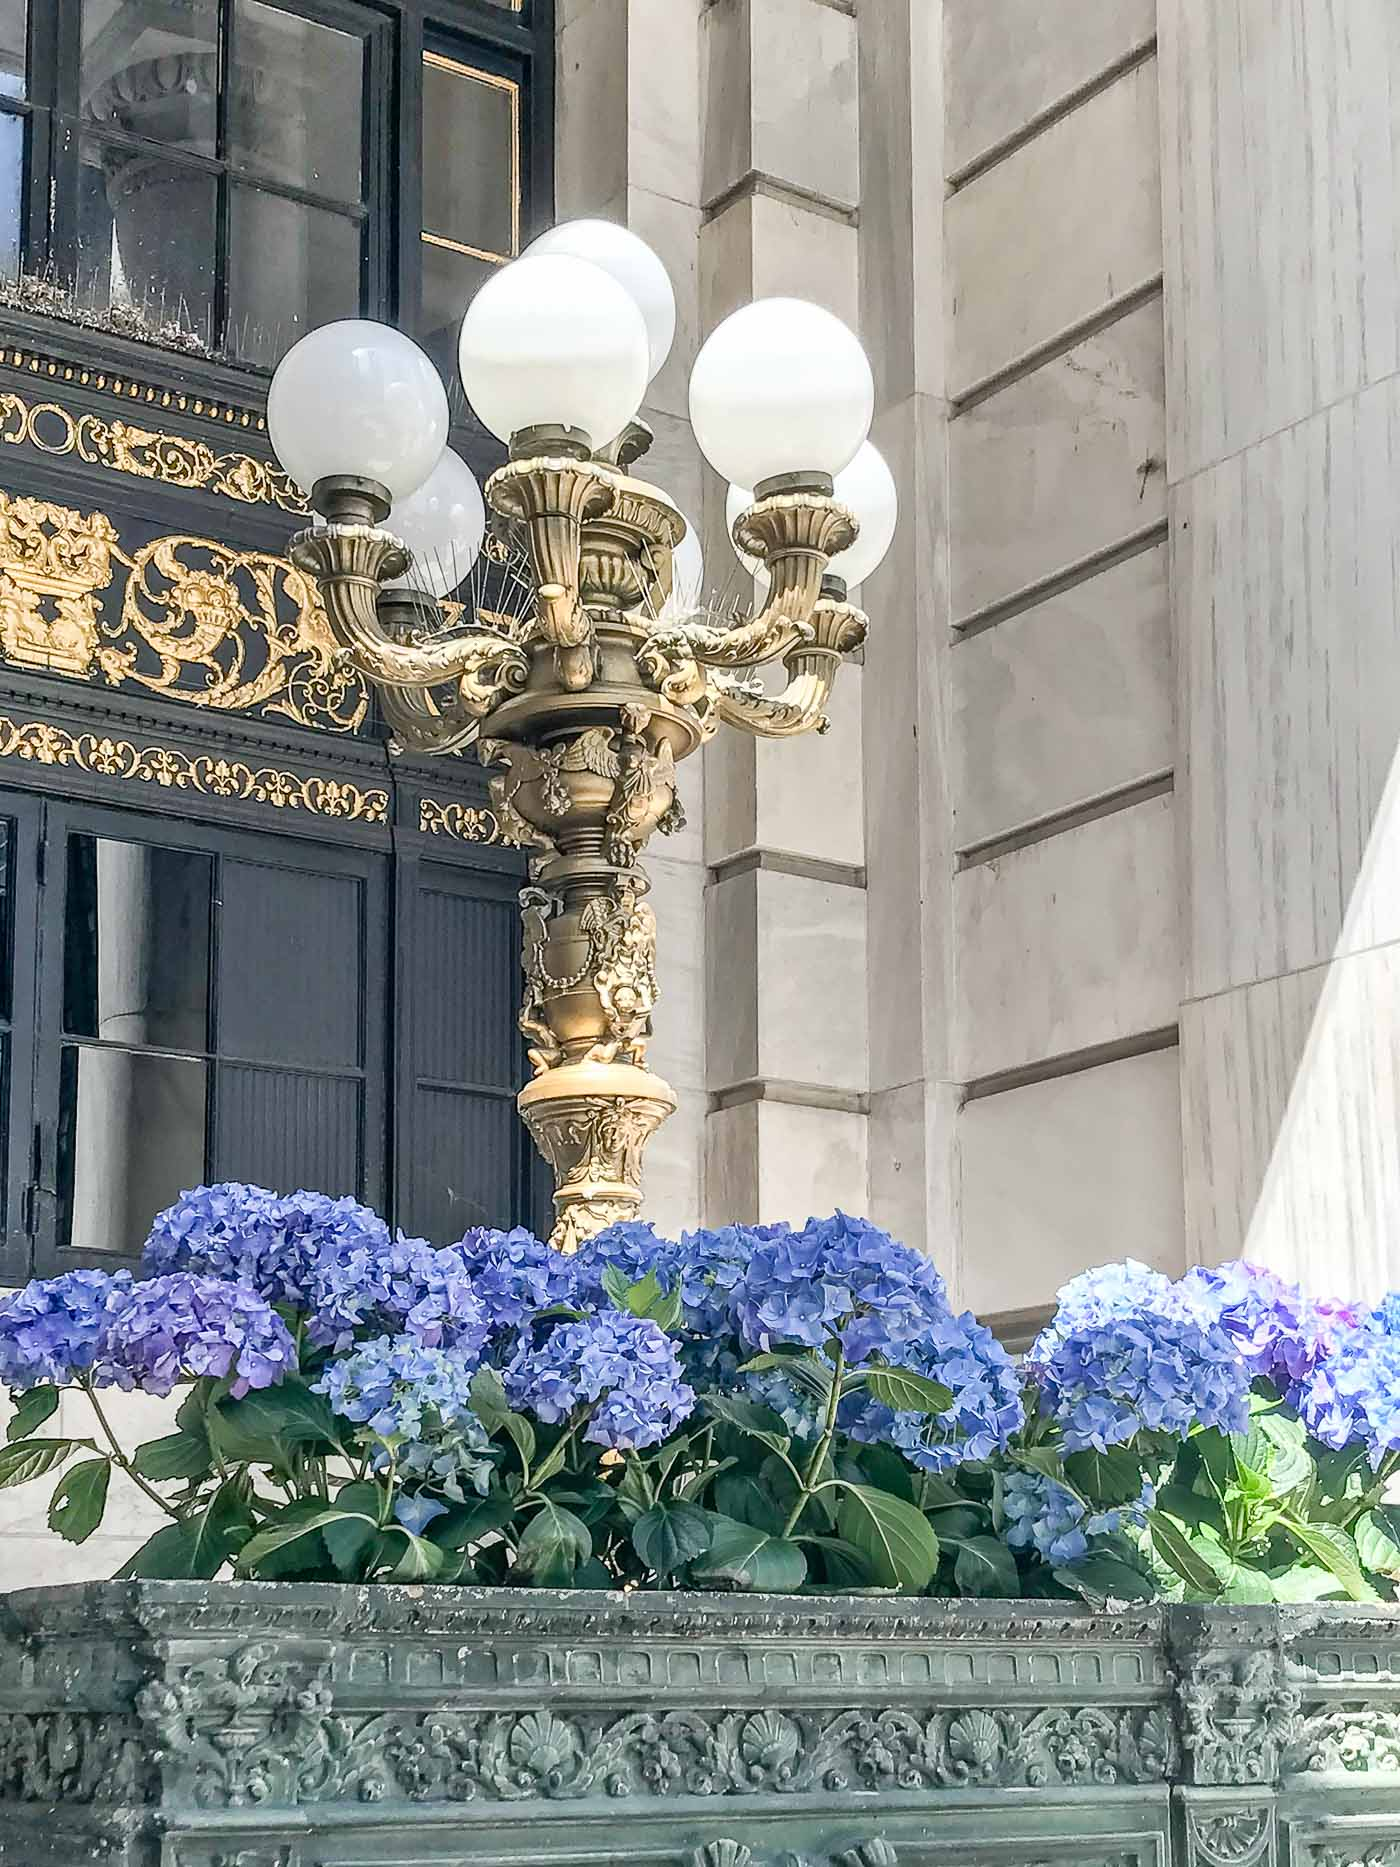 Plaza Hotel outside lamp and hydrangeas